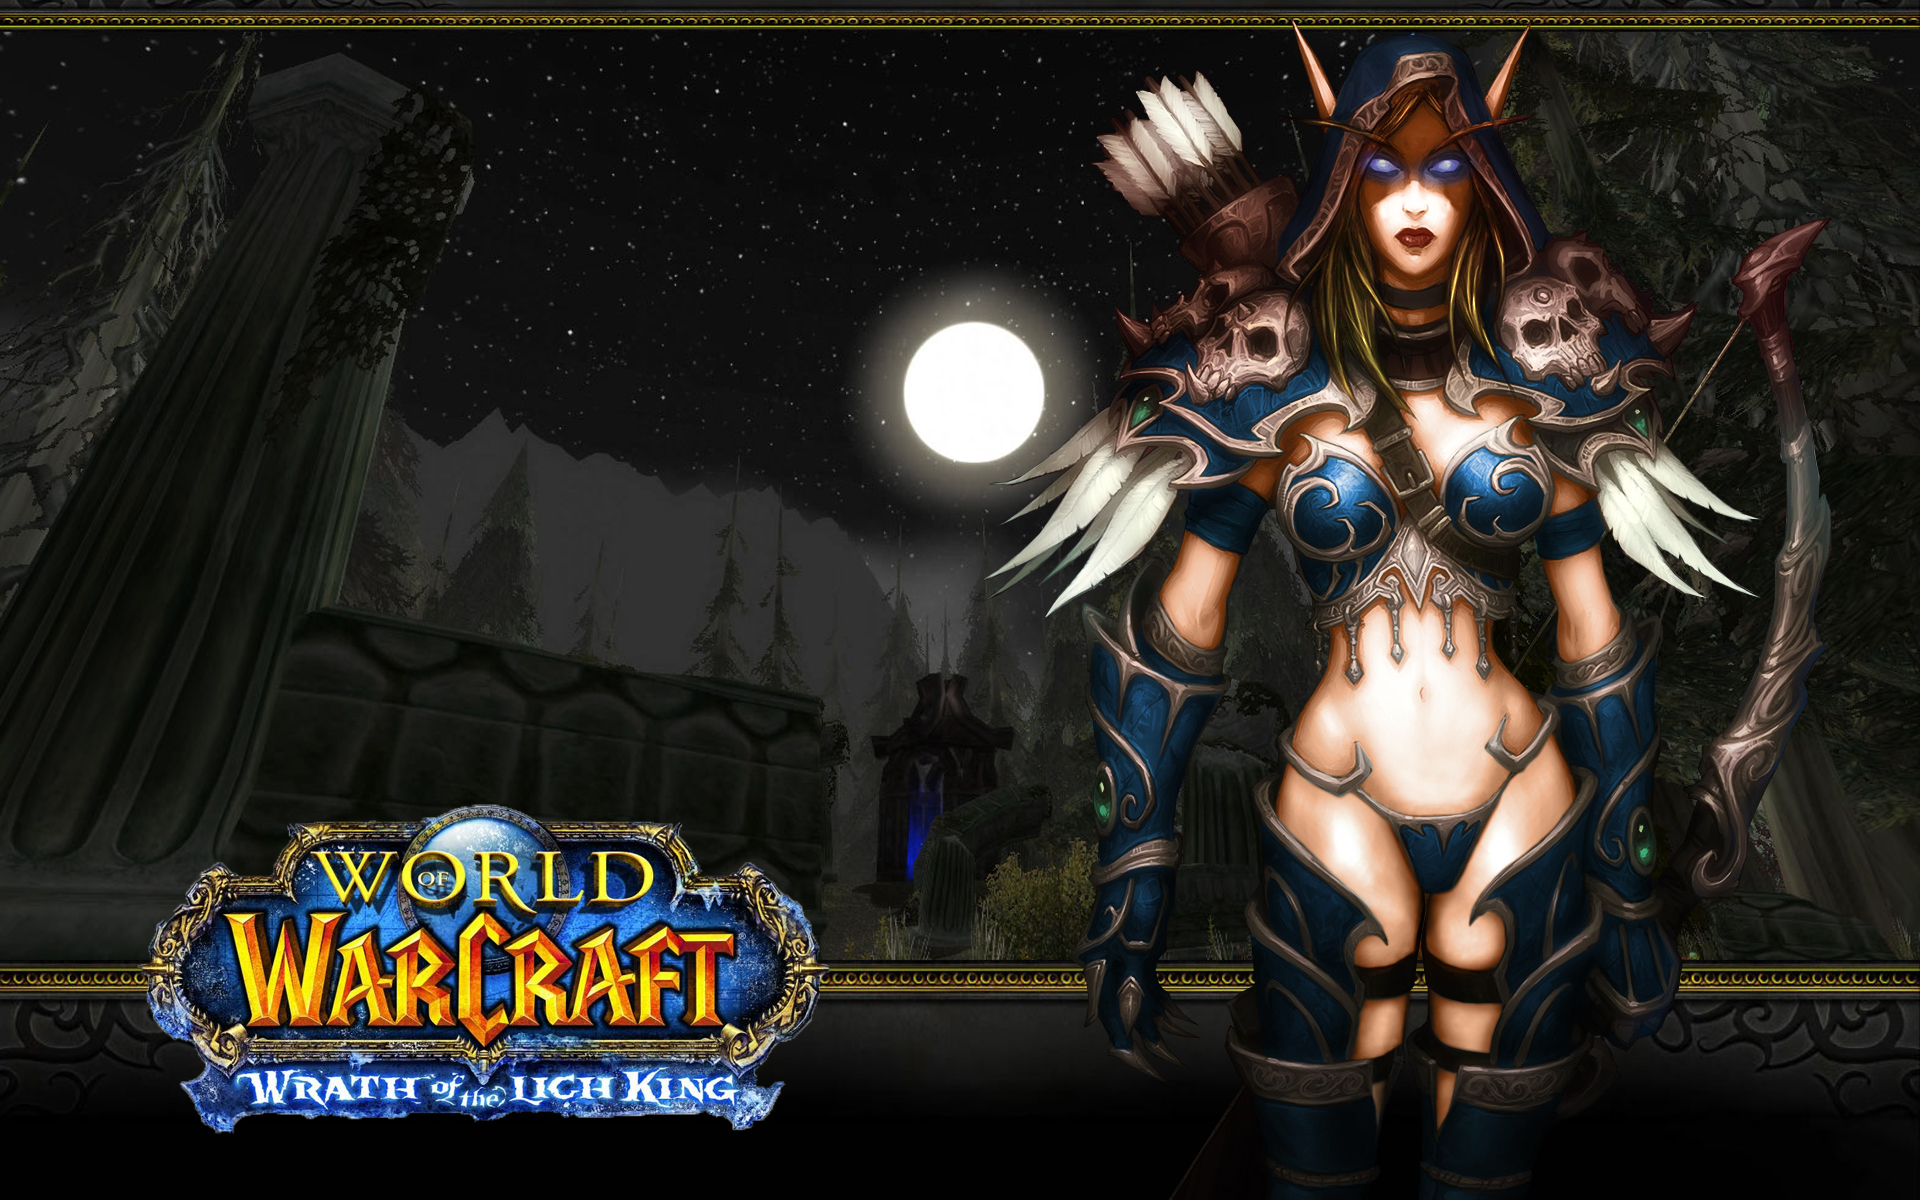 Warcraft 3 porn pic naked picture